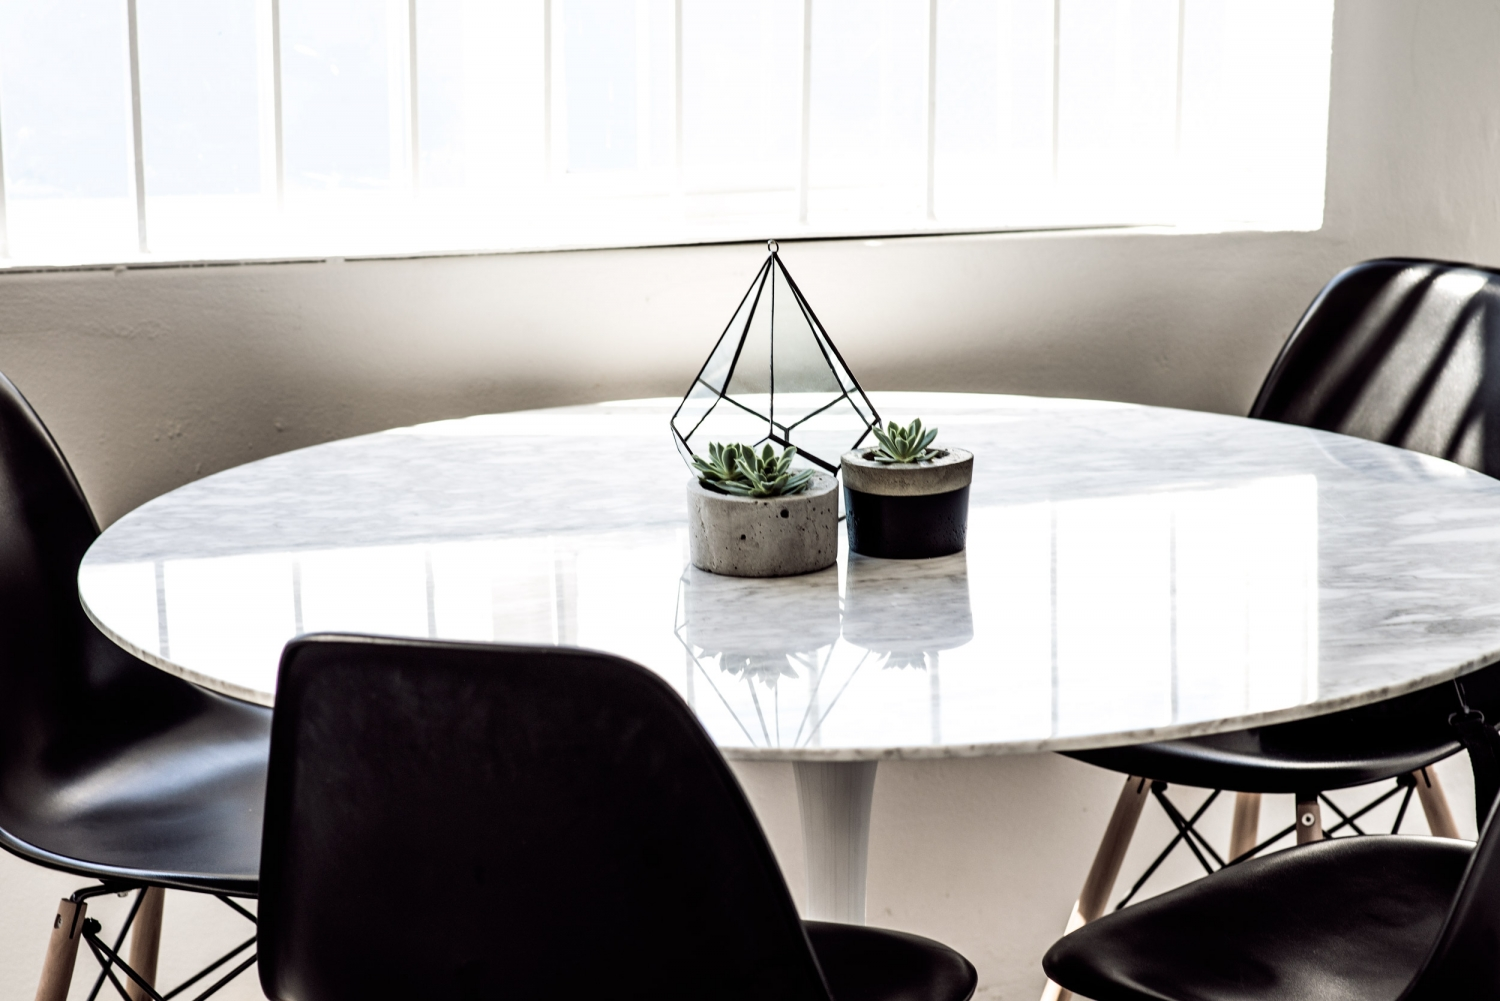 harper-and-harley_Etsy_plants-in-an-office_2